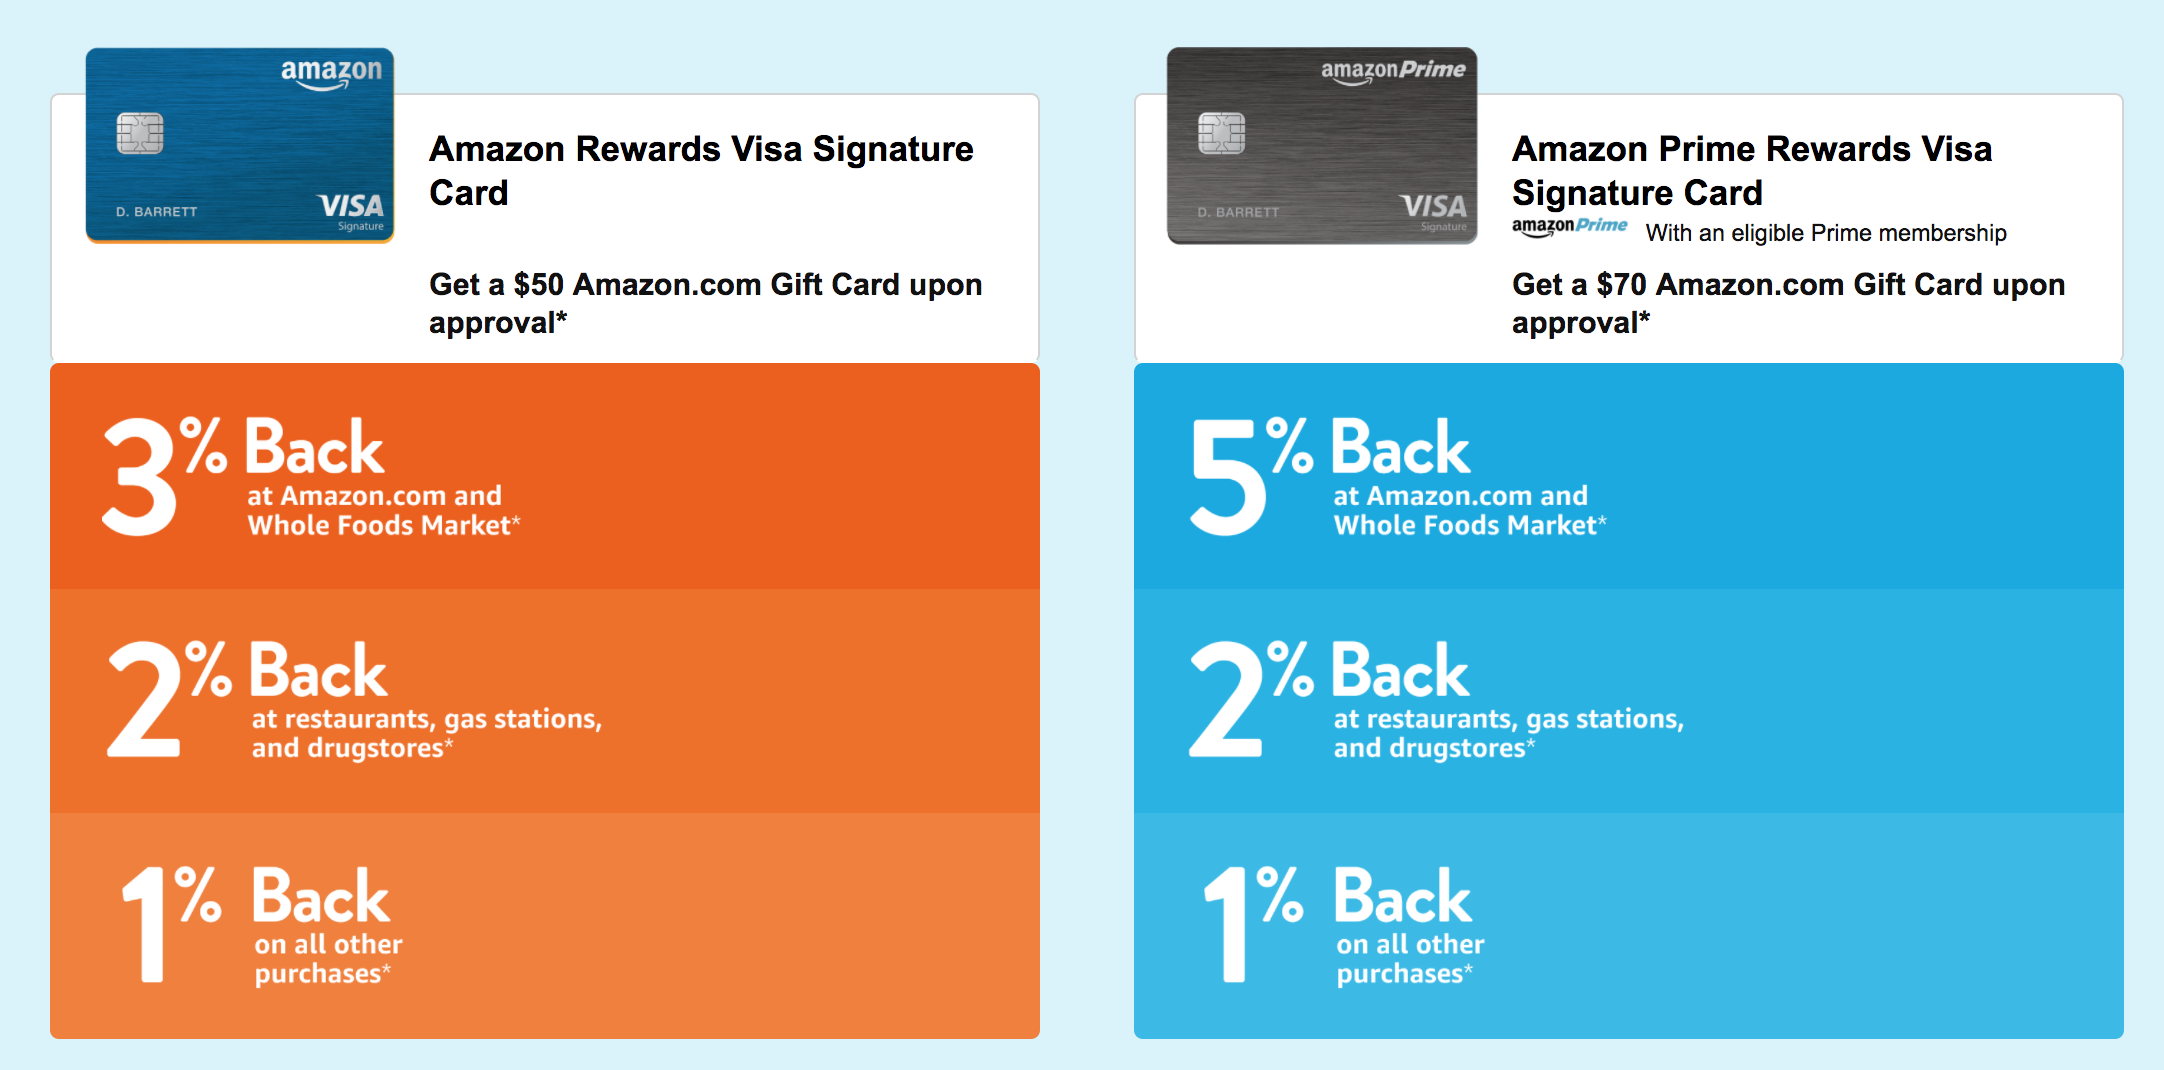 Amazon Credit Cards - Amazon Rewards vs The Prime Rewards Card [7]